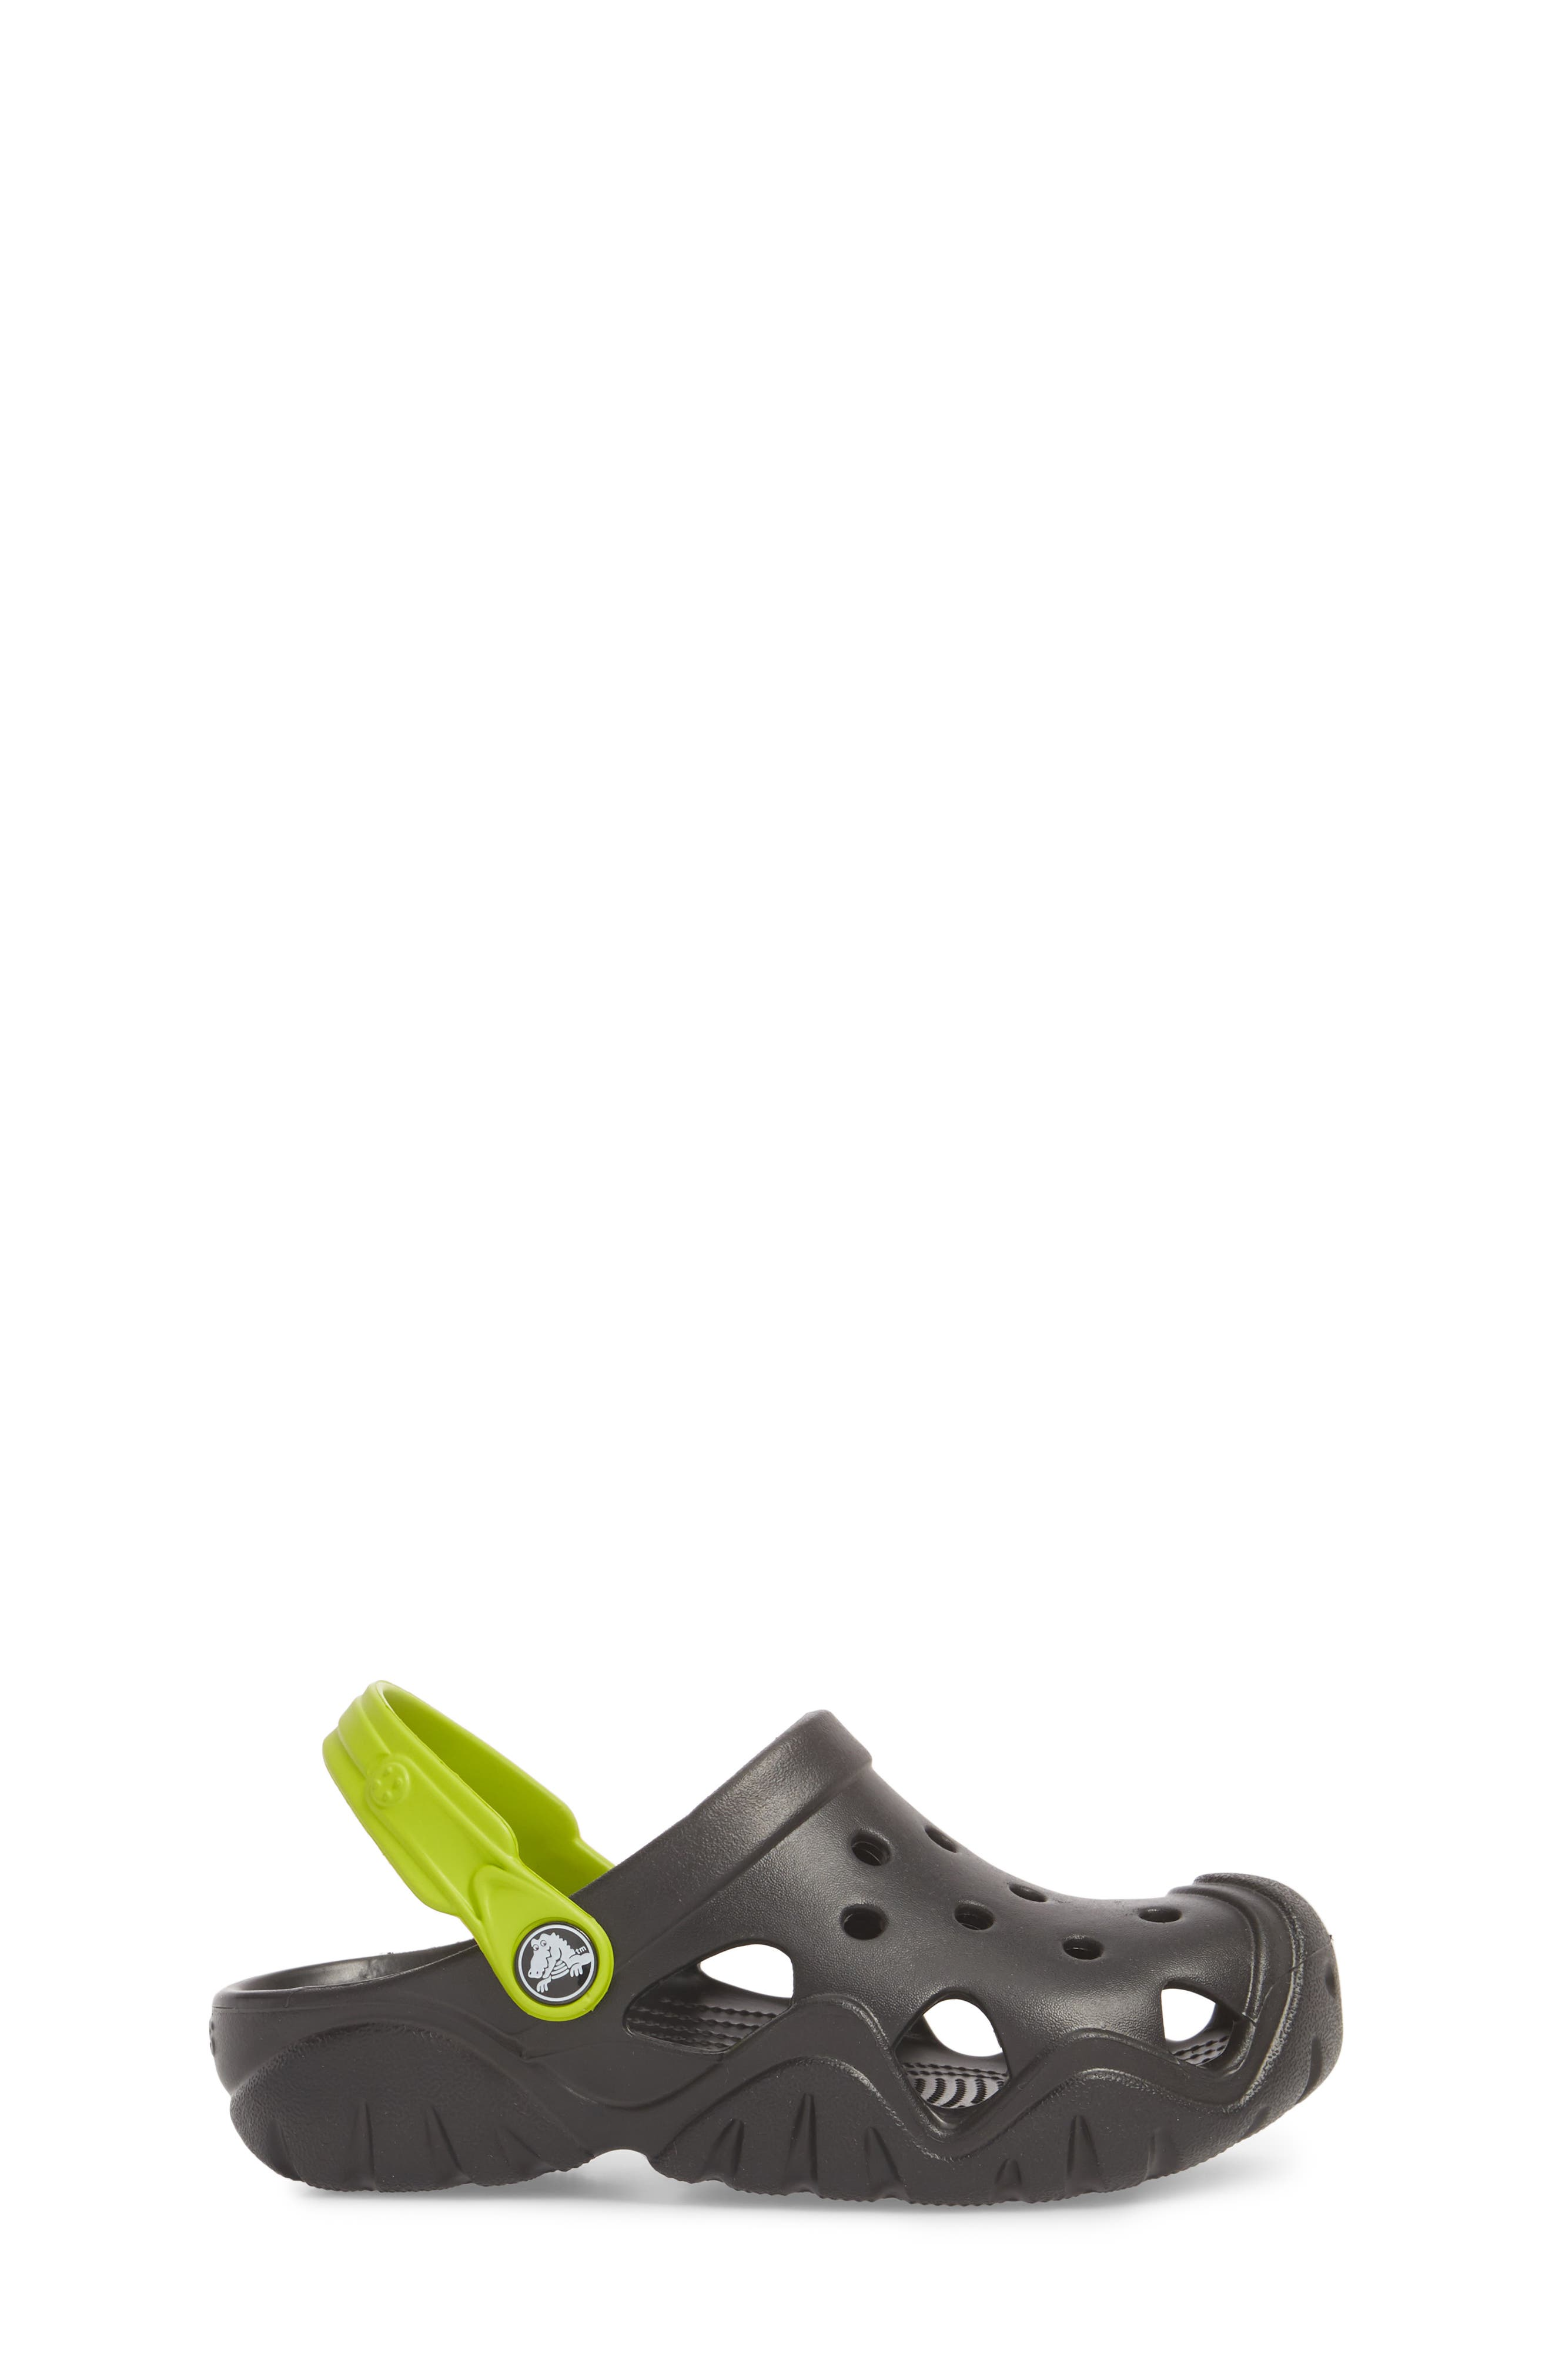 Swiftwater Clogs,                             Alternate thumbnail 3, color,                             Black